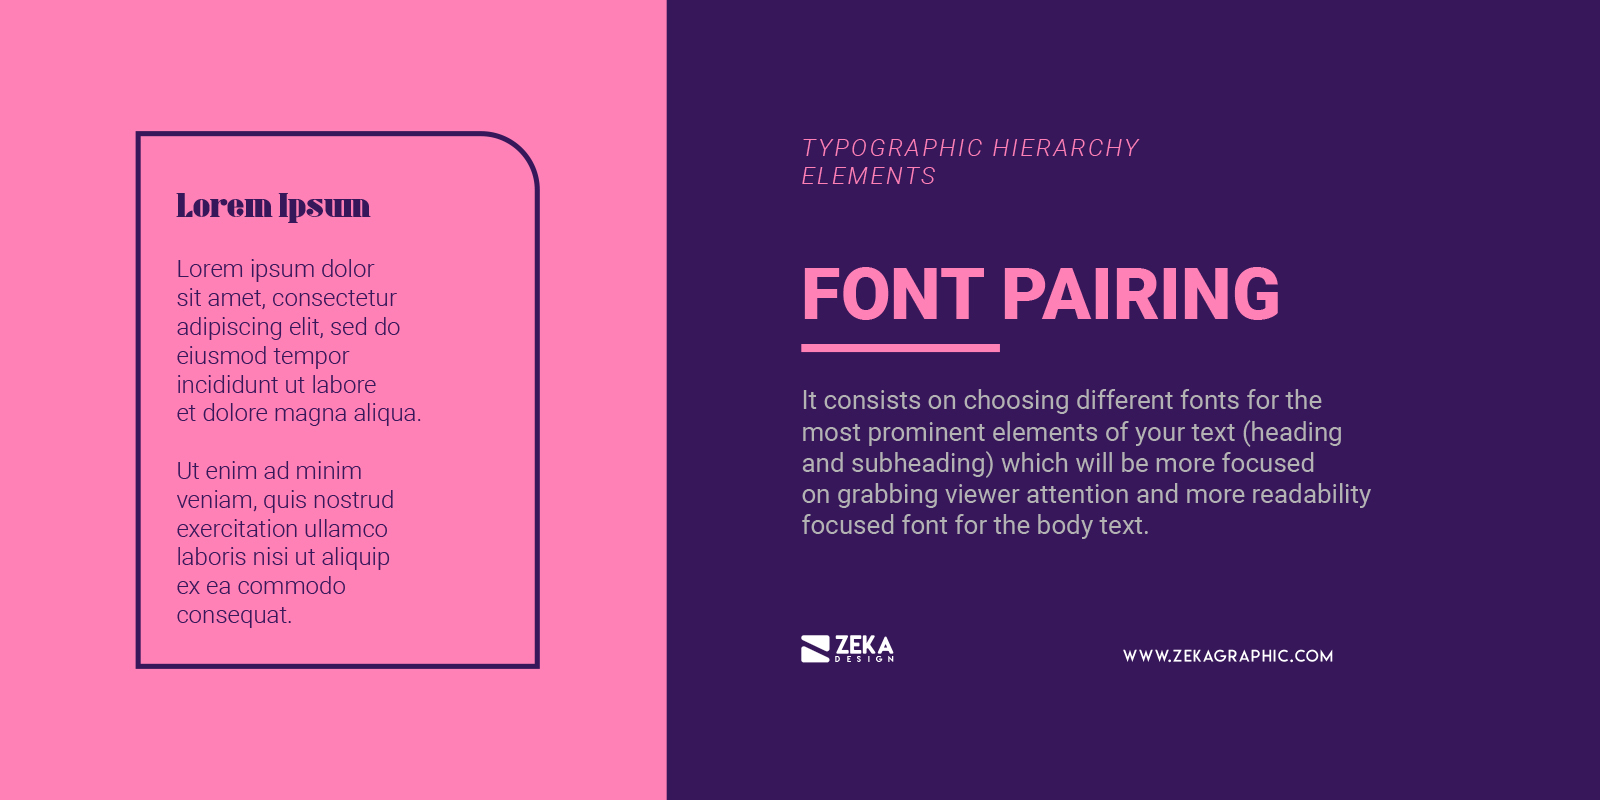 Font Pairing for Typographic Hierarchy in Graphic Design